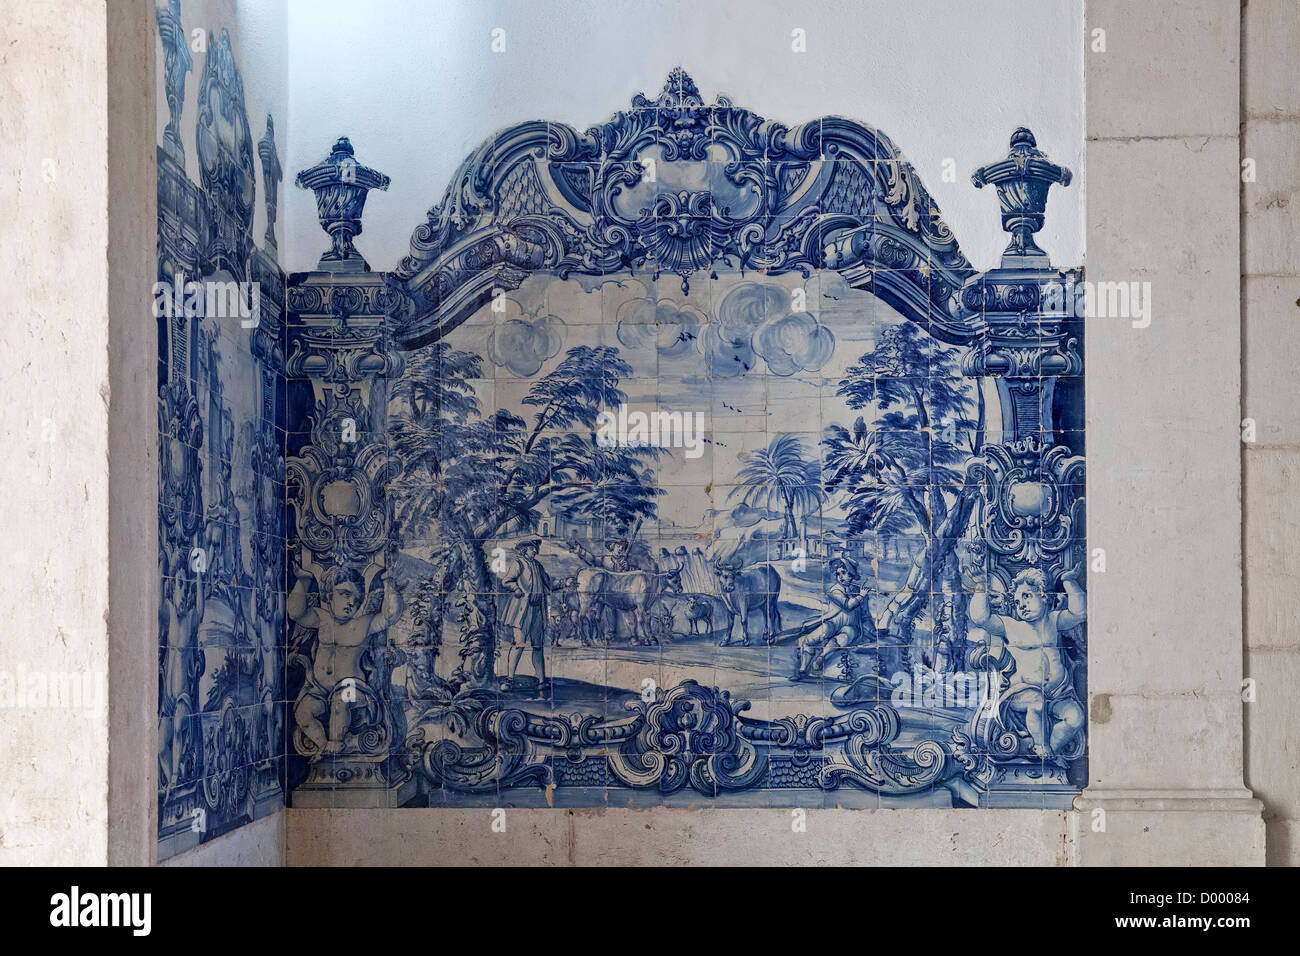 18th Century Portuguese Blue Tiles (Azulejos) decorating the cloister of the Sao Vicente de Fora Monastery. Lisbon, - Stock Image